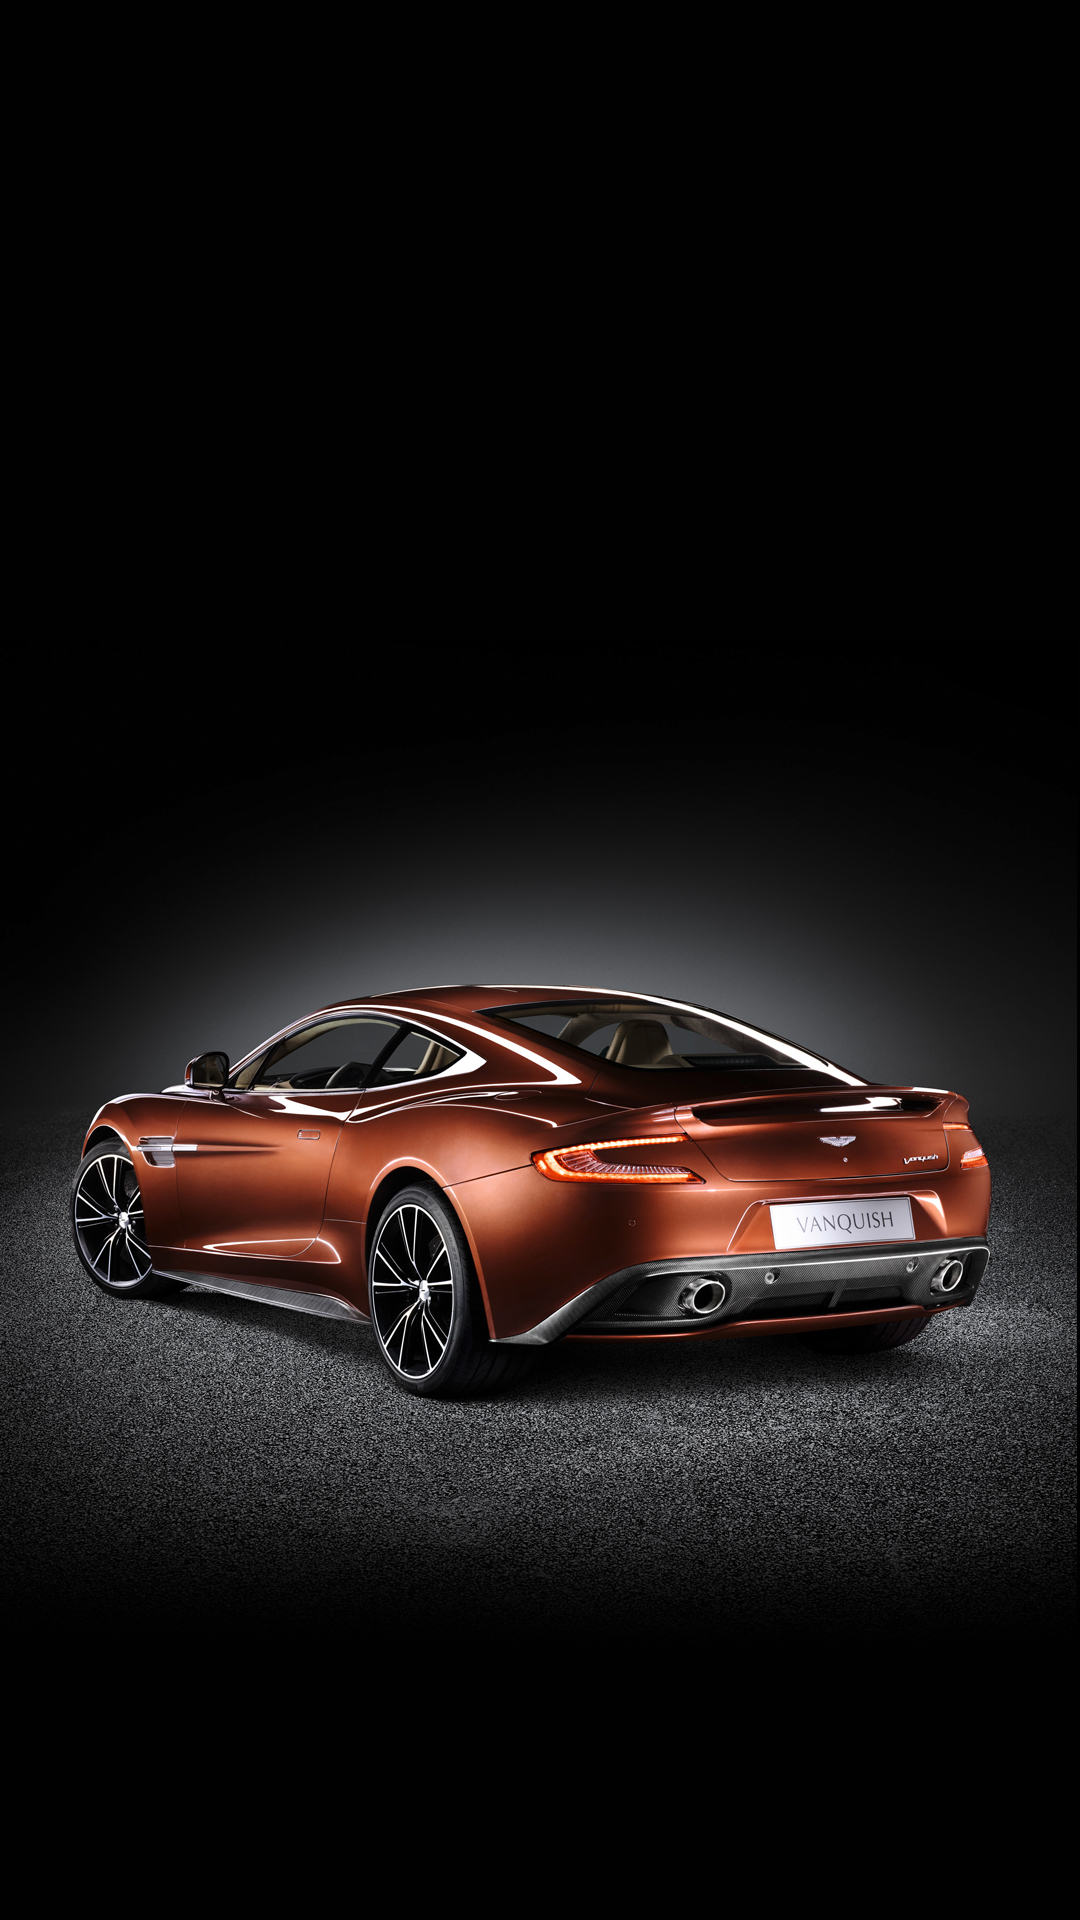 Aston Martin HTC hd wallpaper